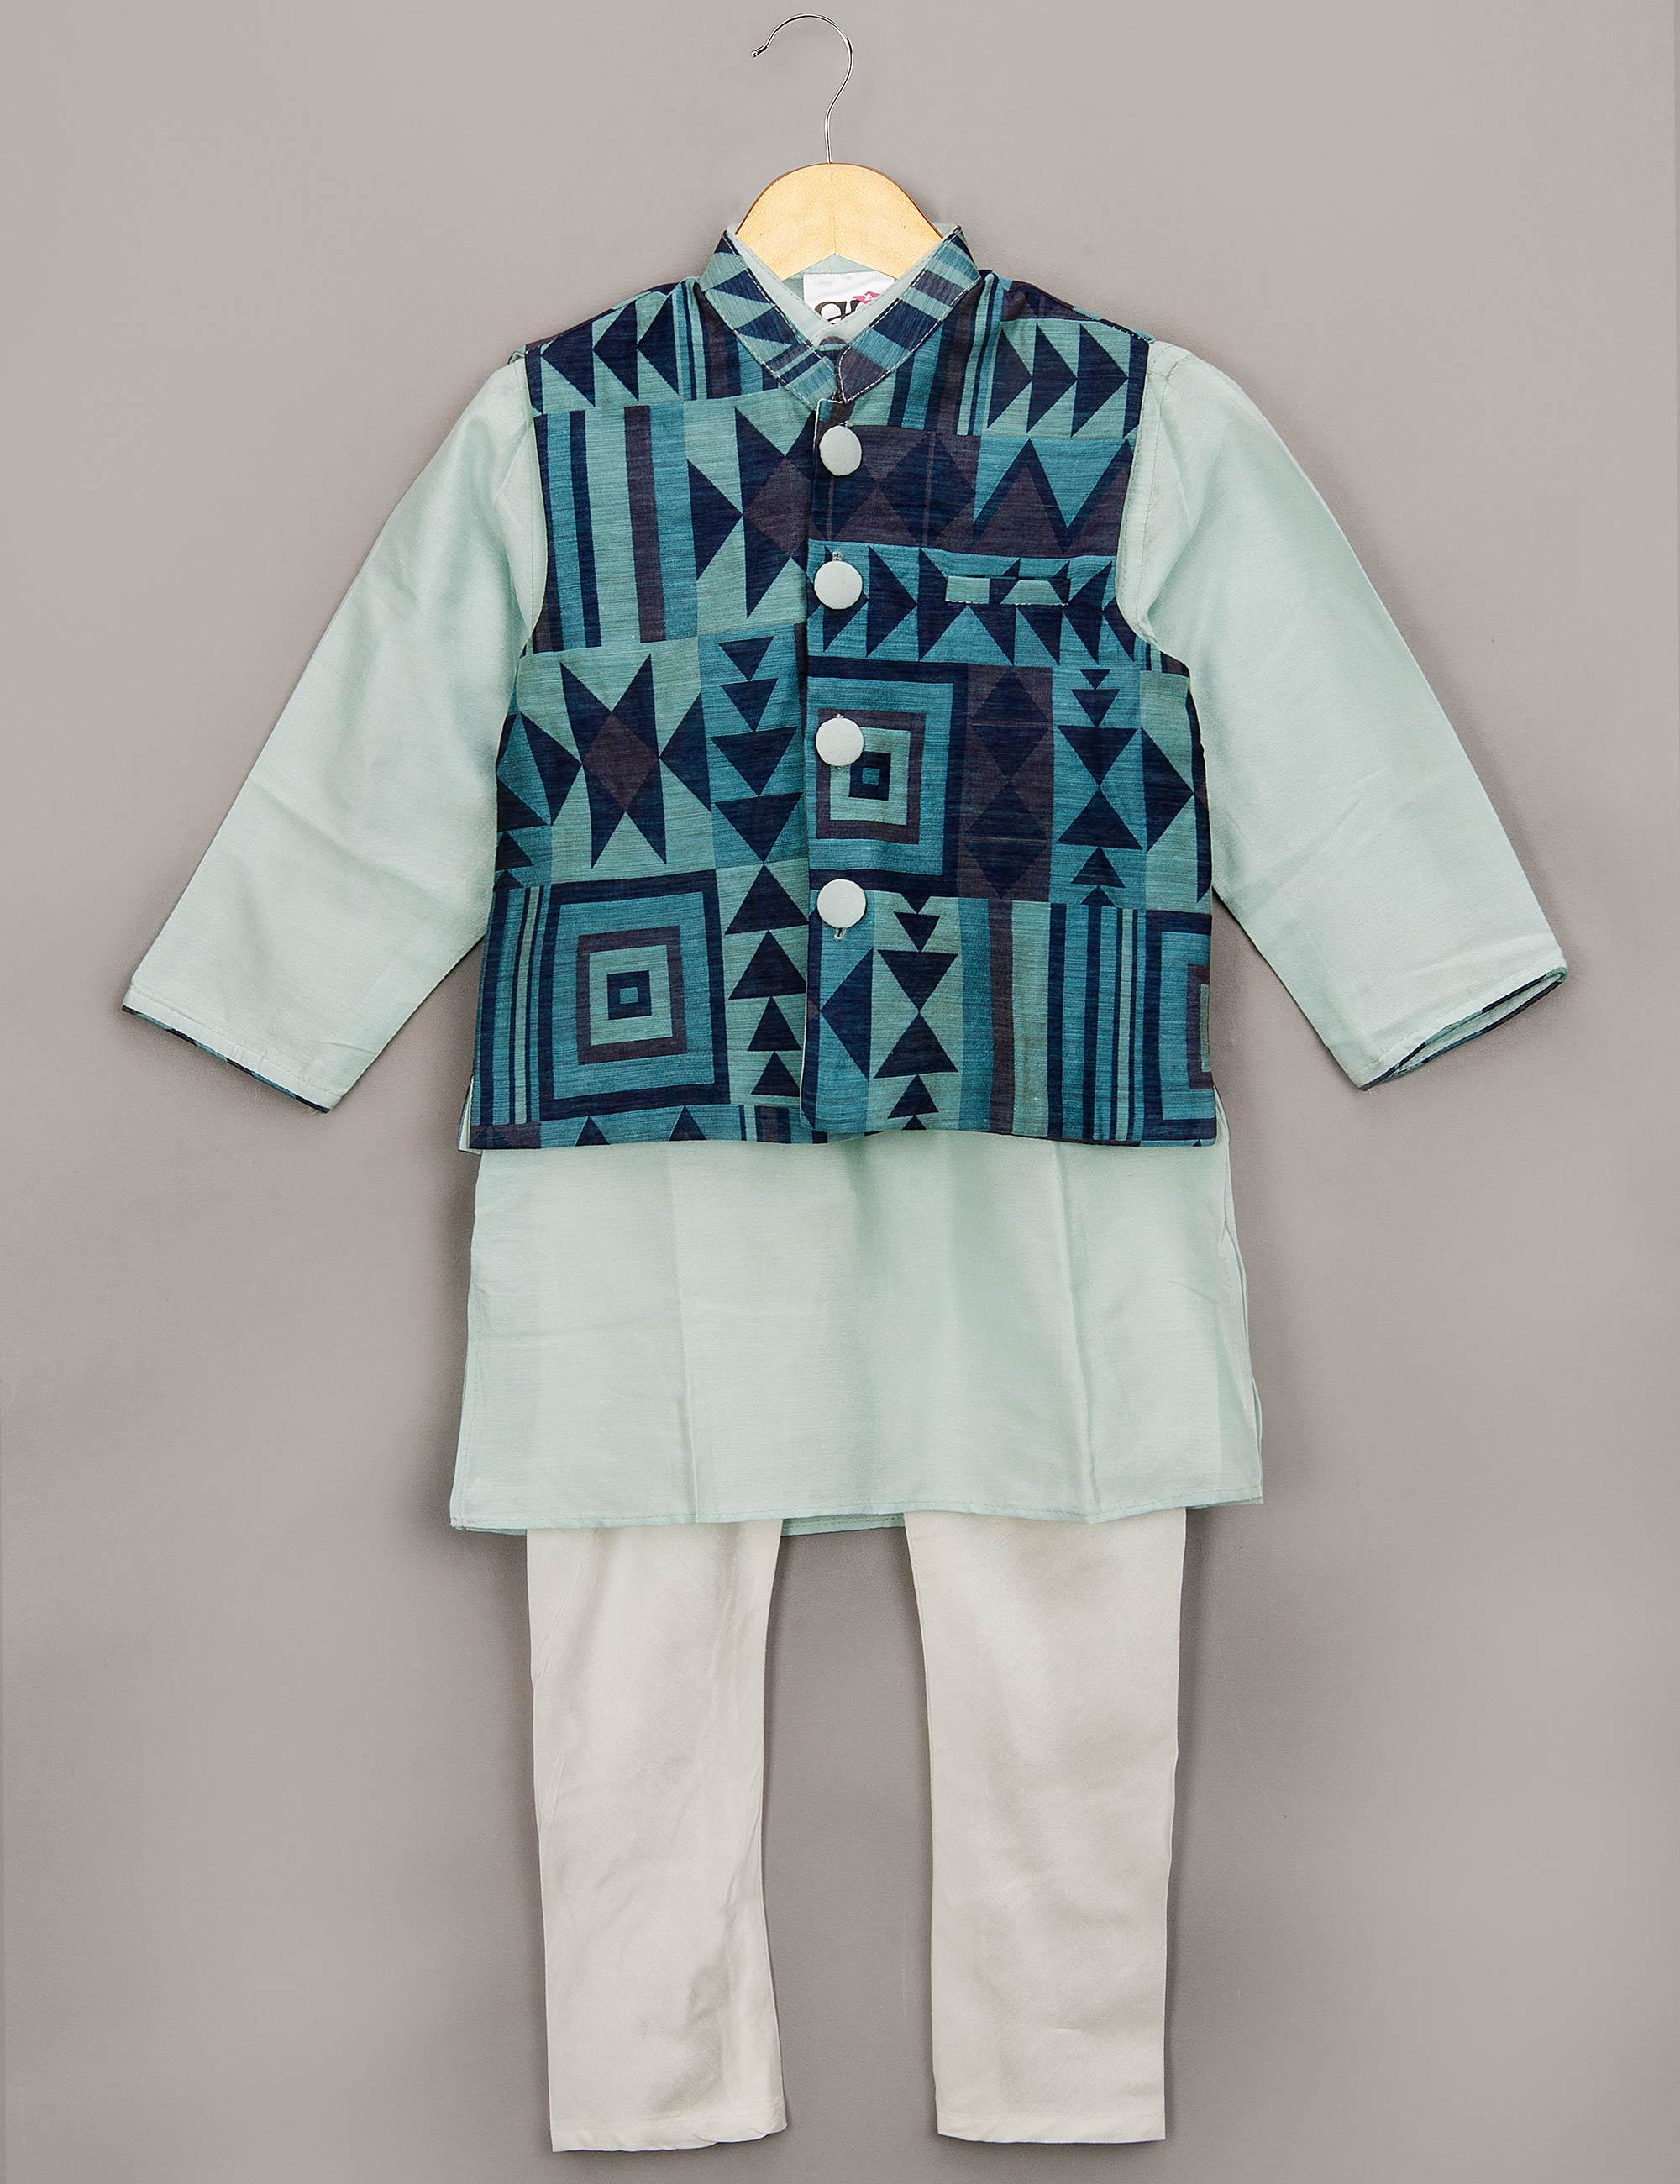 Geometric Printed Nehru Jacket Set for Boys